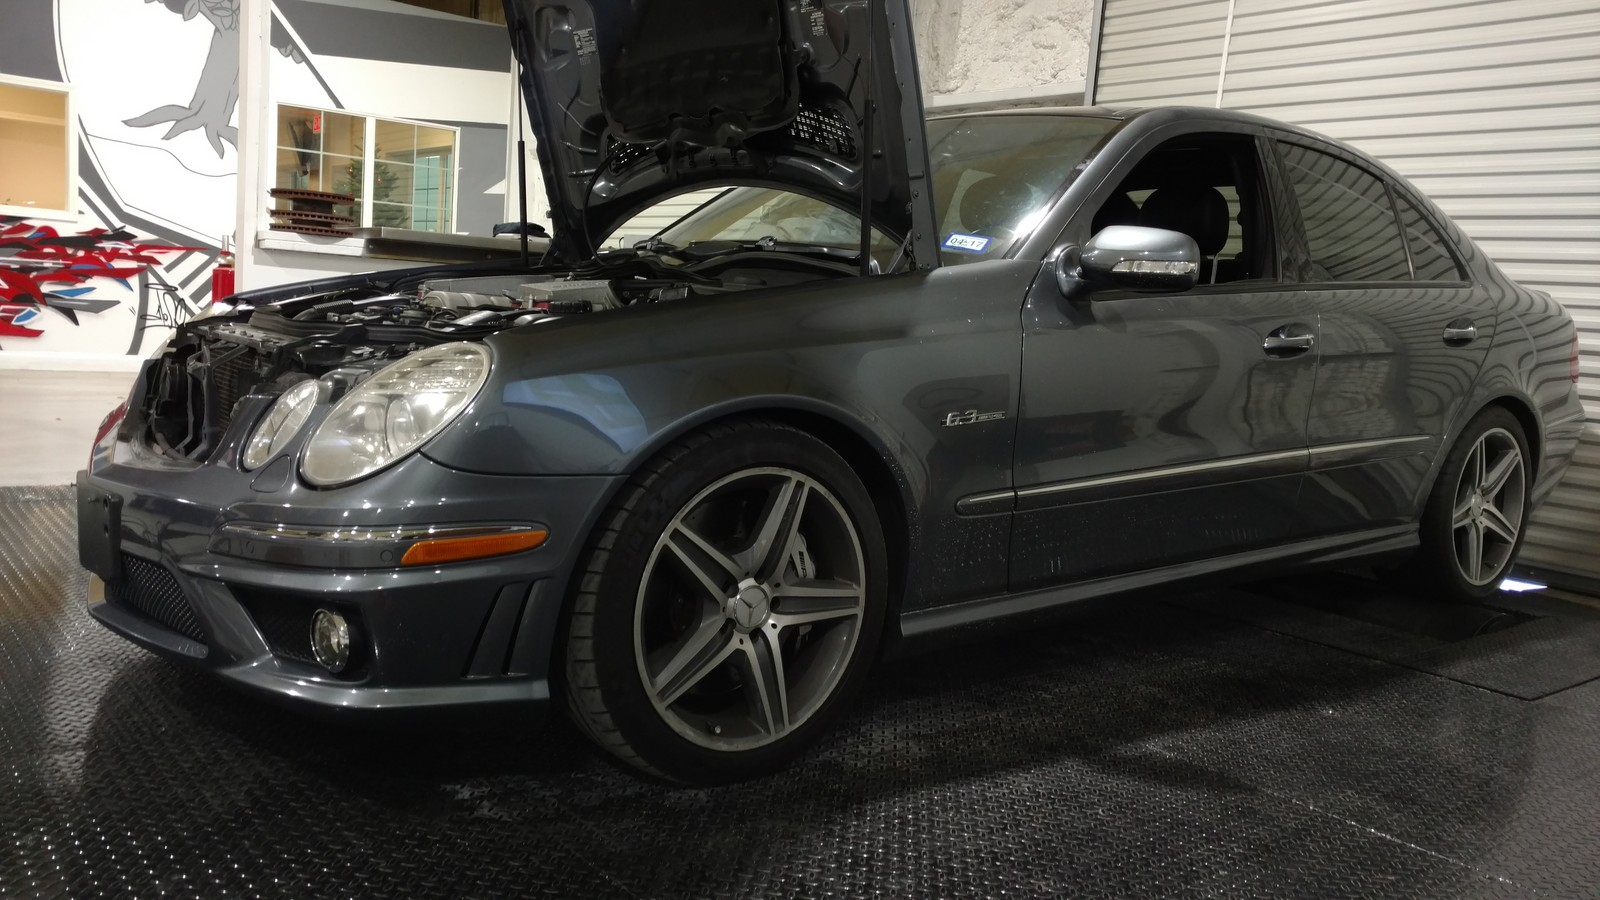 Blue 2007 Mercedes-Benz E63 AMG 130911 Miles